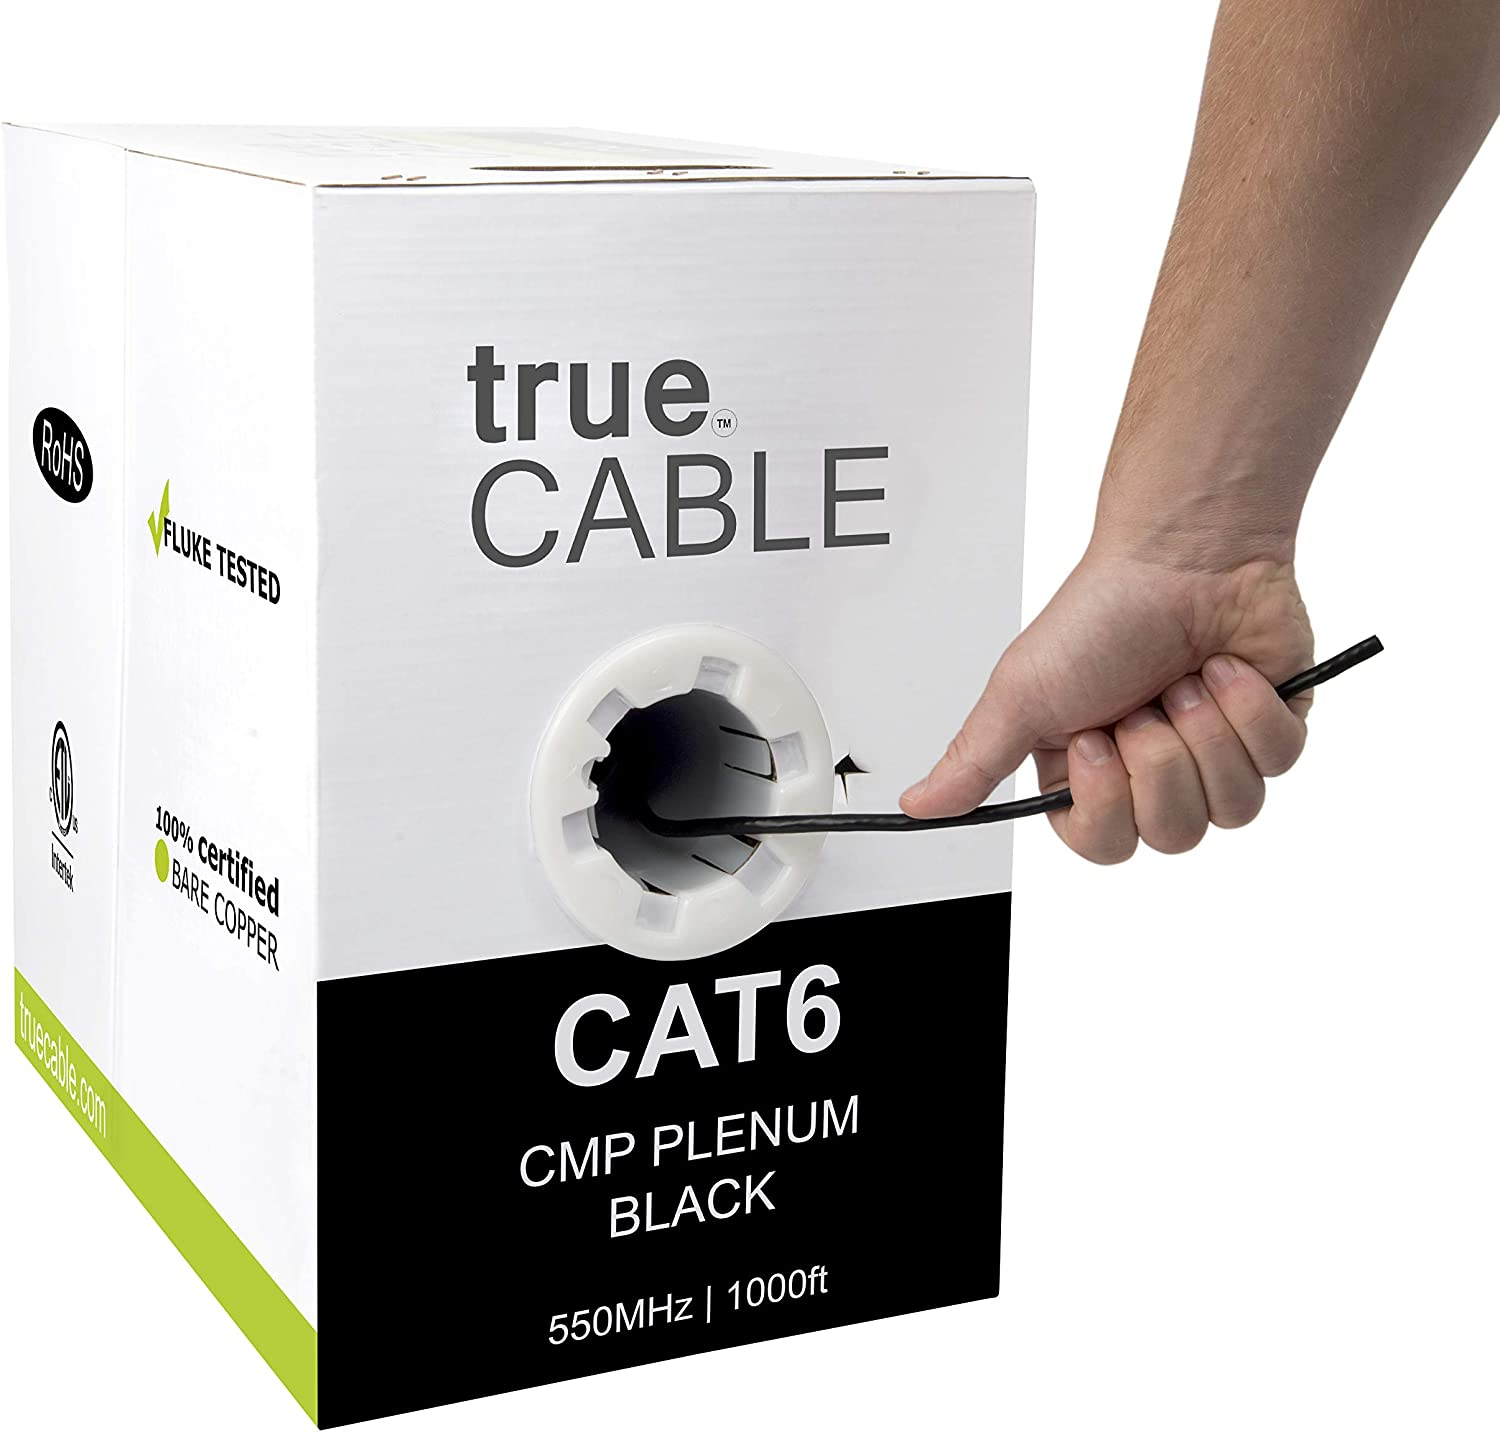 Unshielded Twisted Pair CMP 550MHz 23AWG UTP White /& Black Color Cat6 Plenum Available in Blue Bulk Ethernet Cable 100/% Solid Bare Copper Cat6 Outdoor Black 1000ft